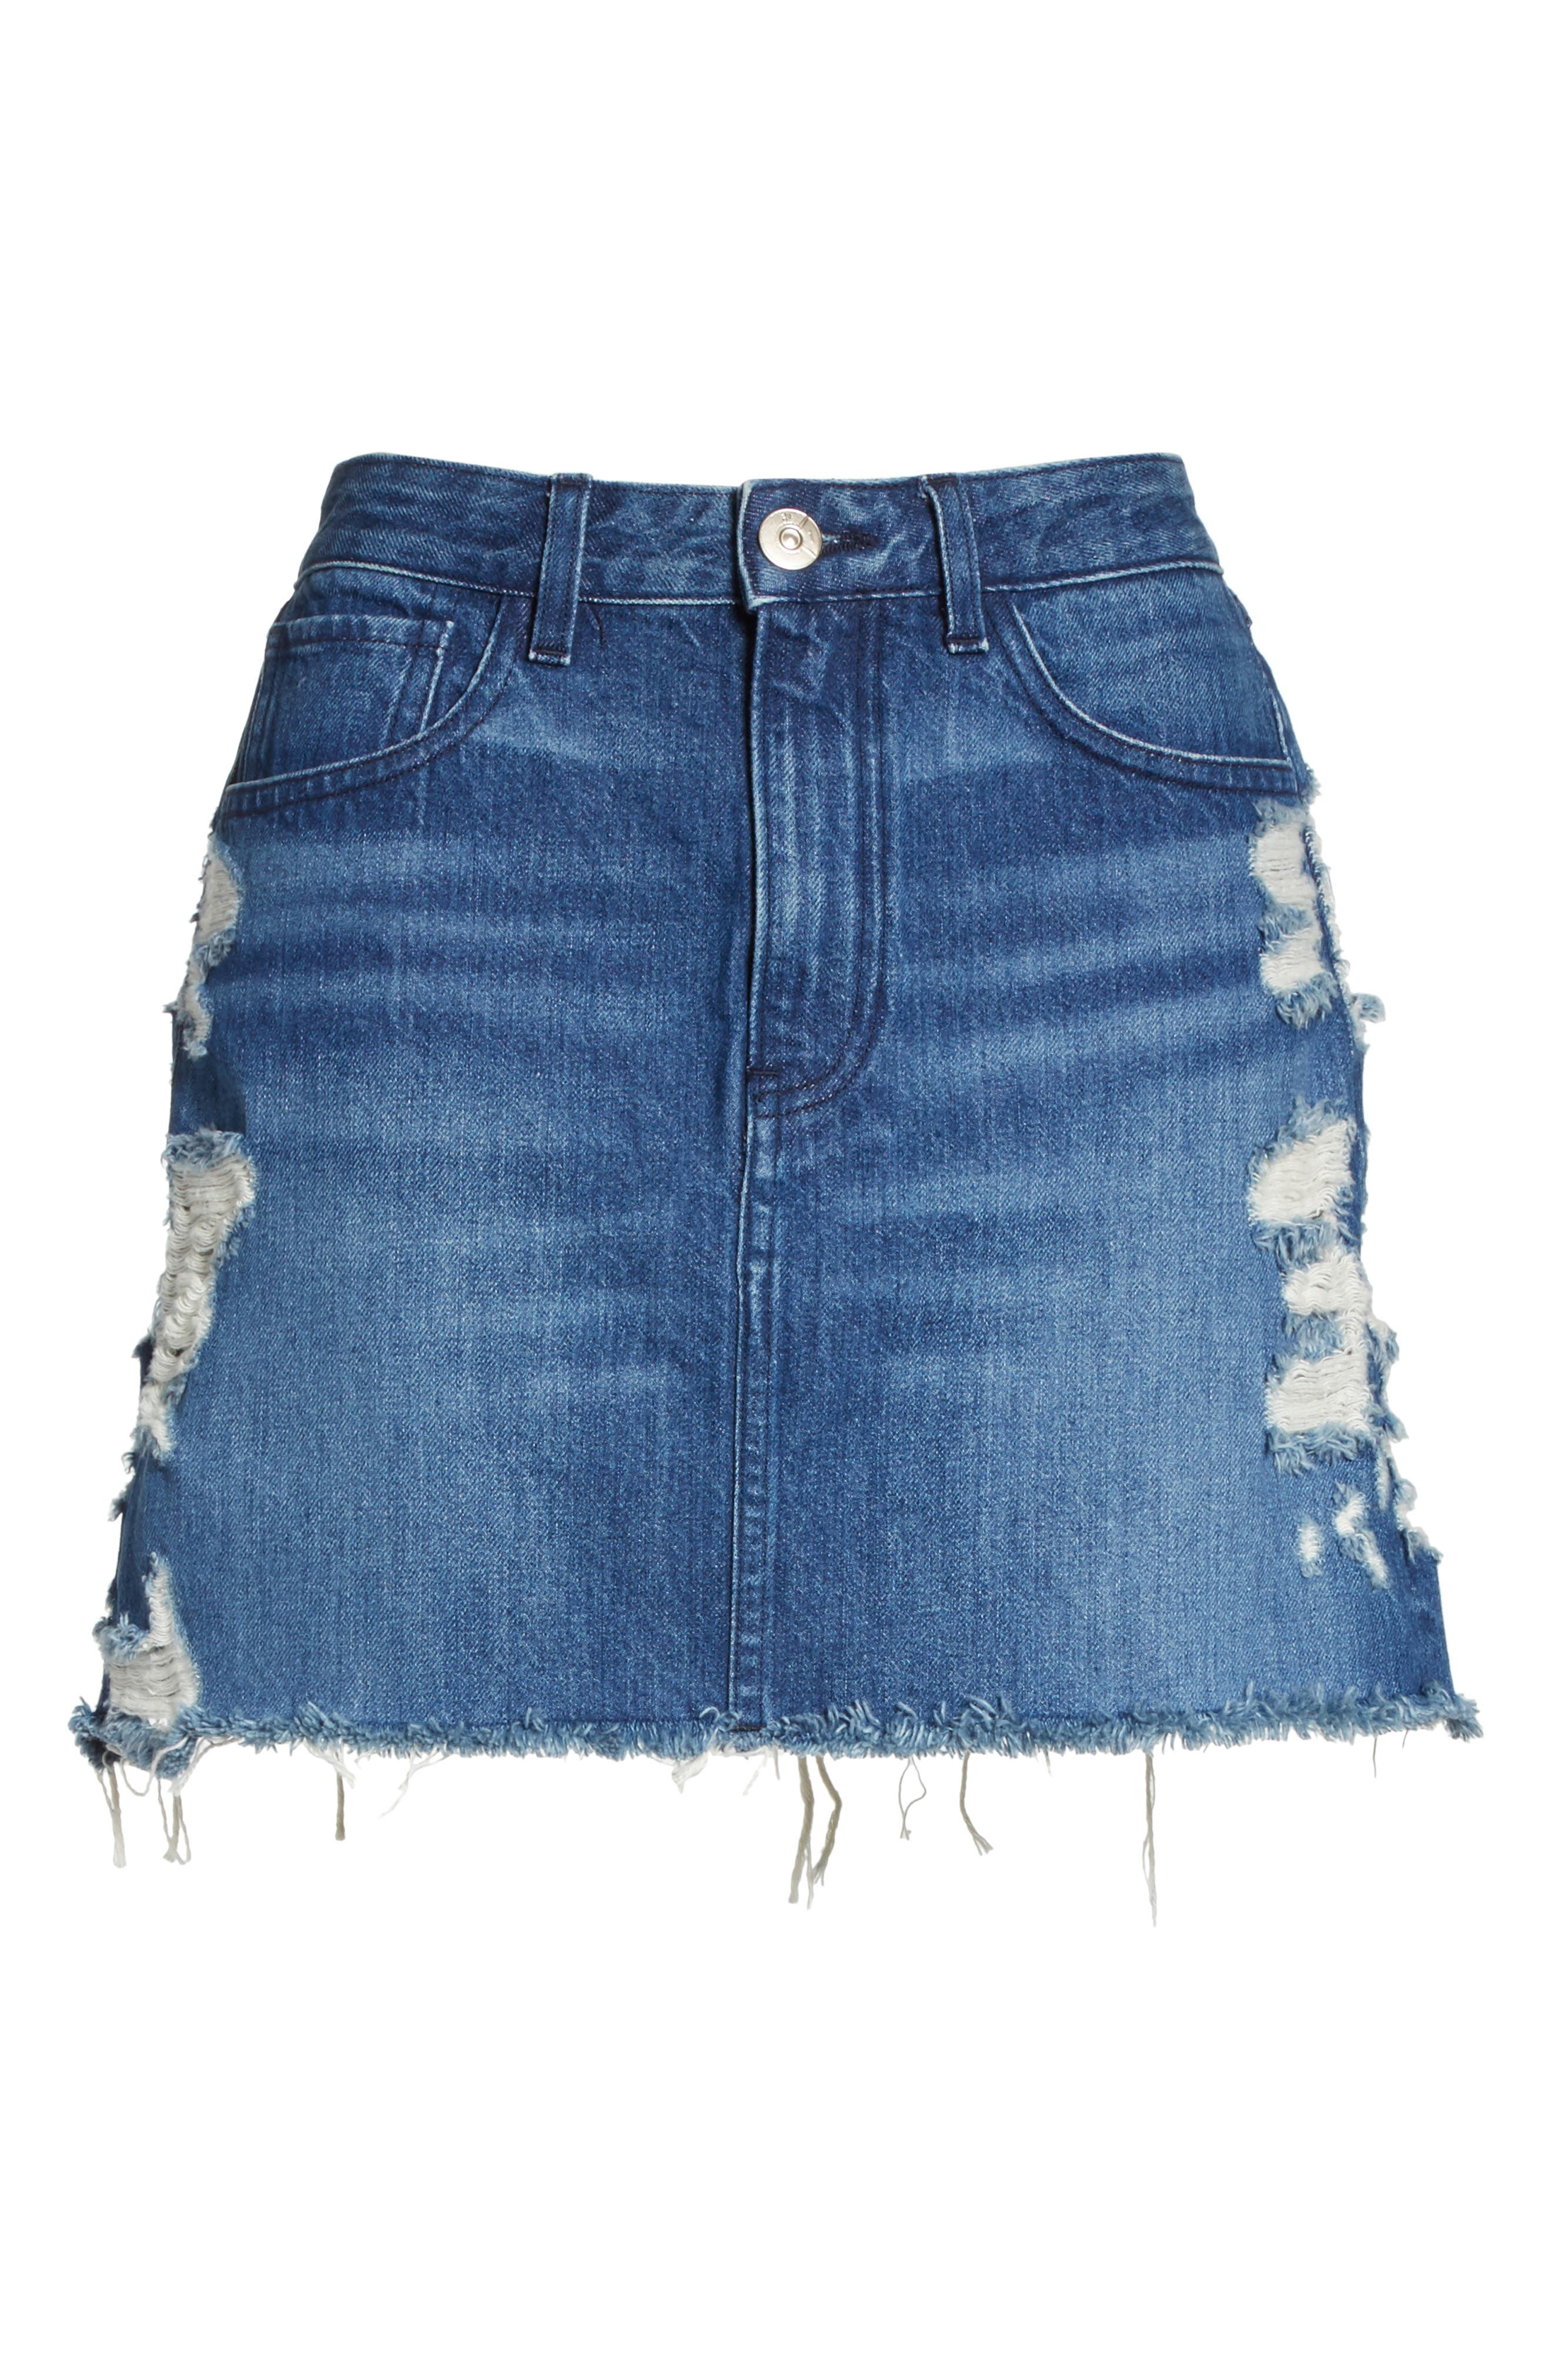 Celine Distressed Denim Skirt,                             Alternate thumbnail 6, color,                             404